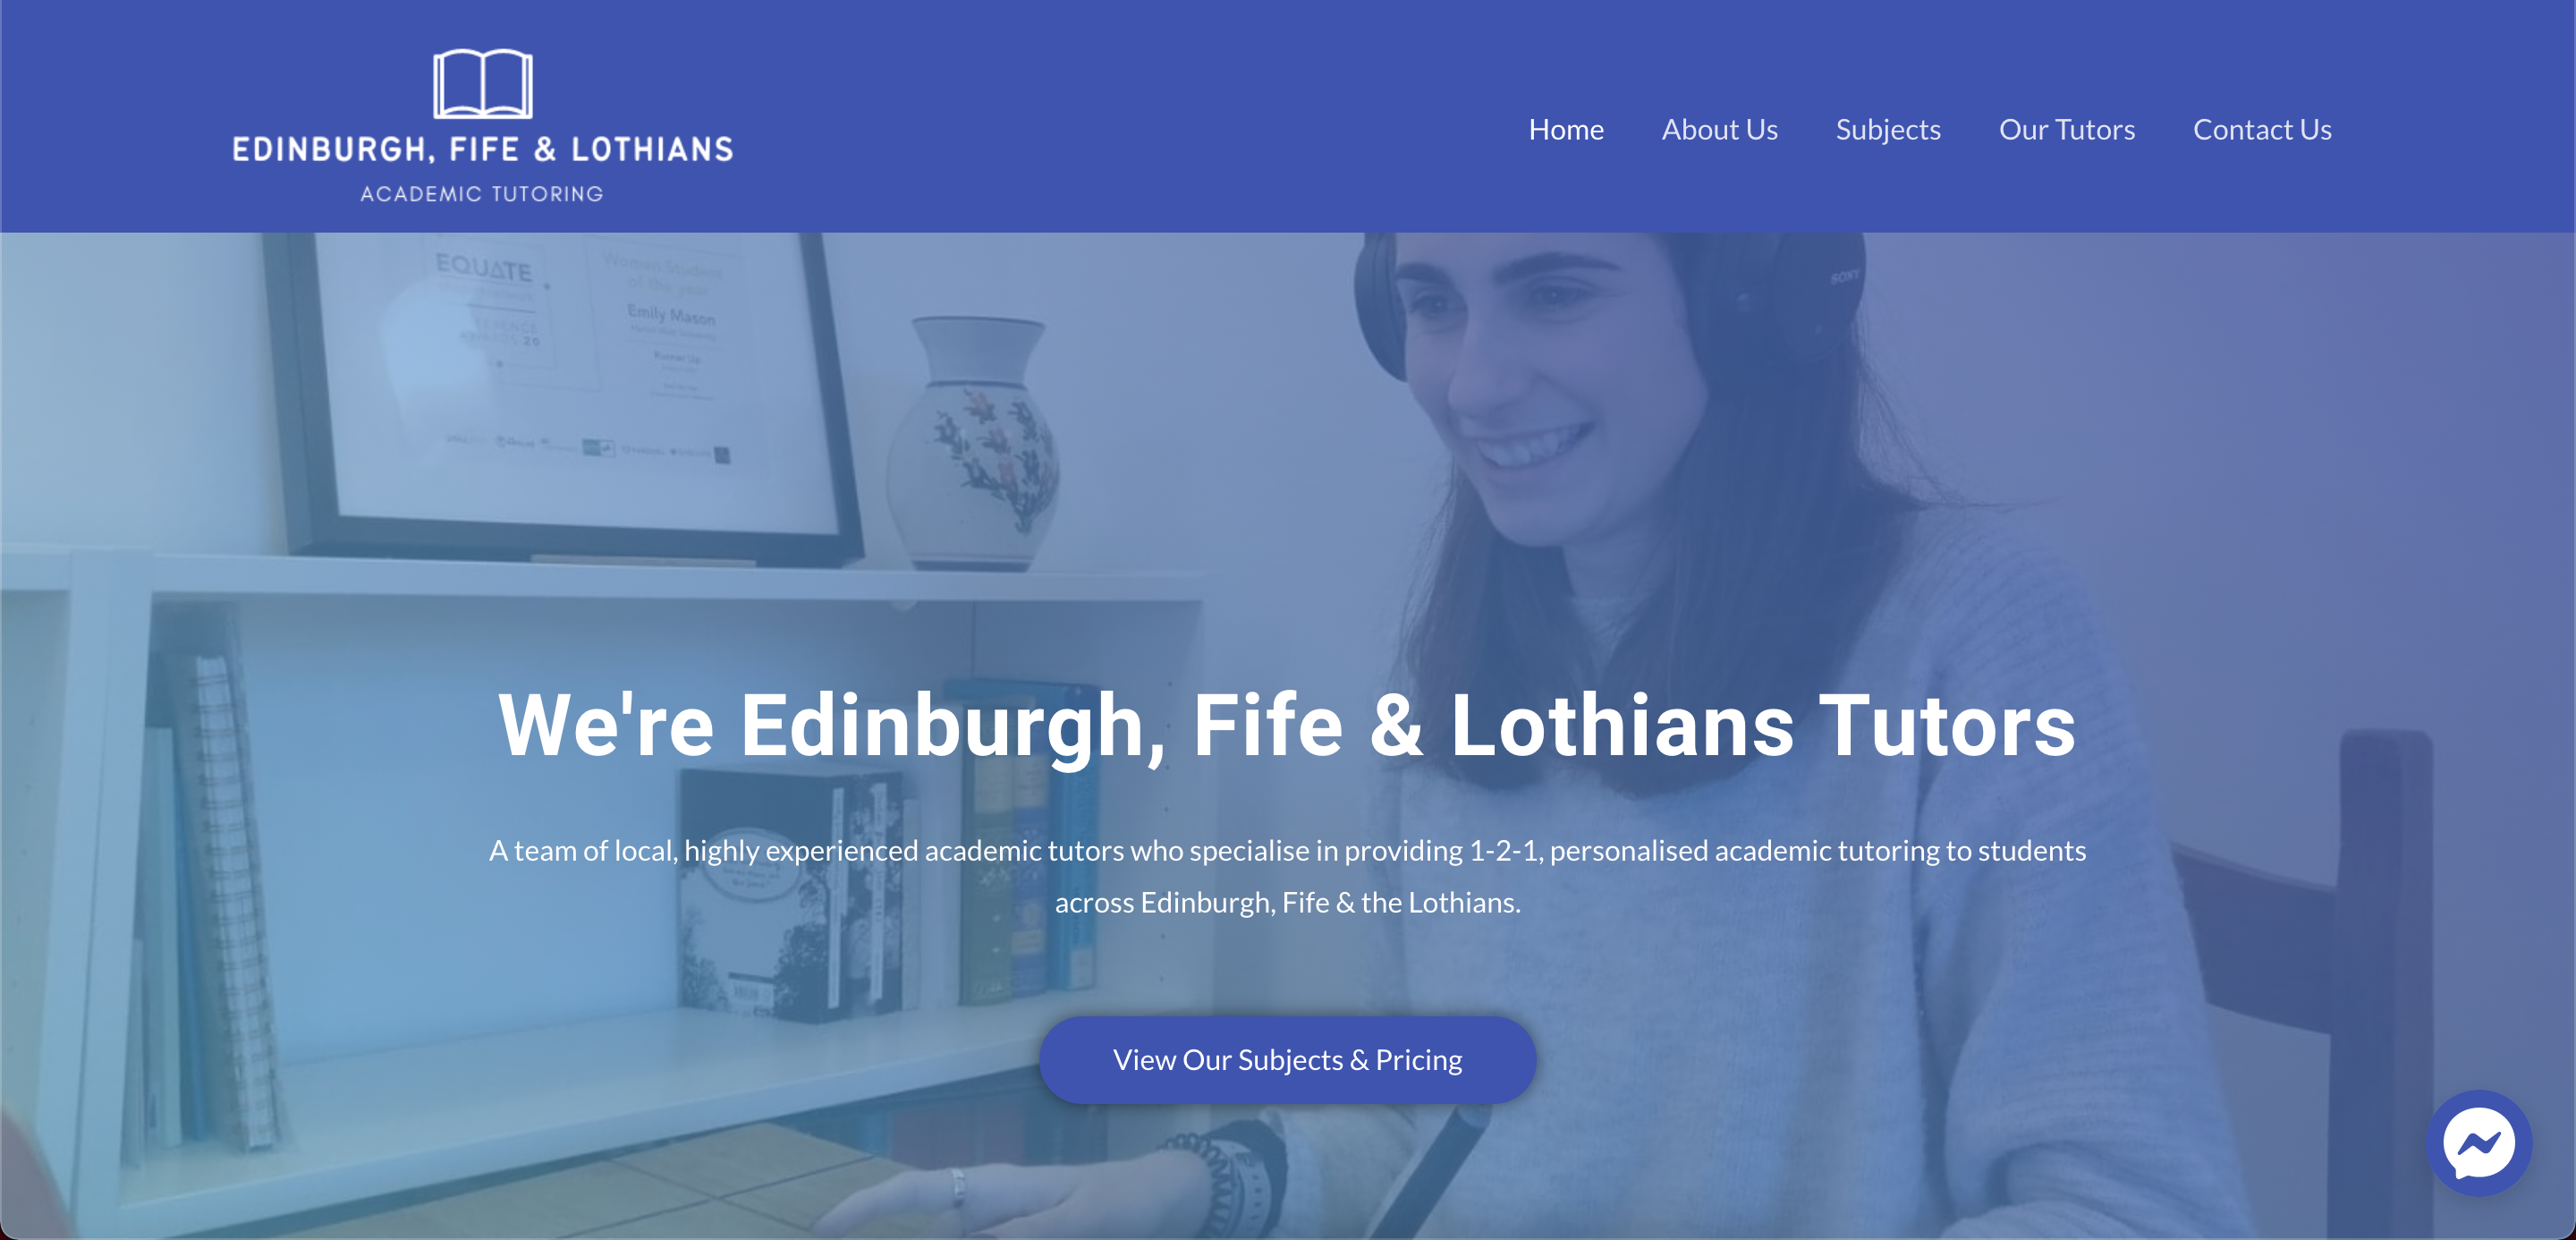 EFL Tutors website created by KY Designs on a budget